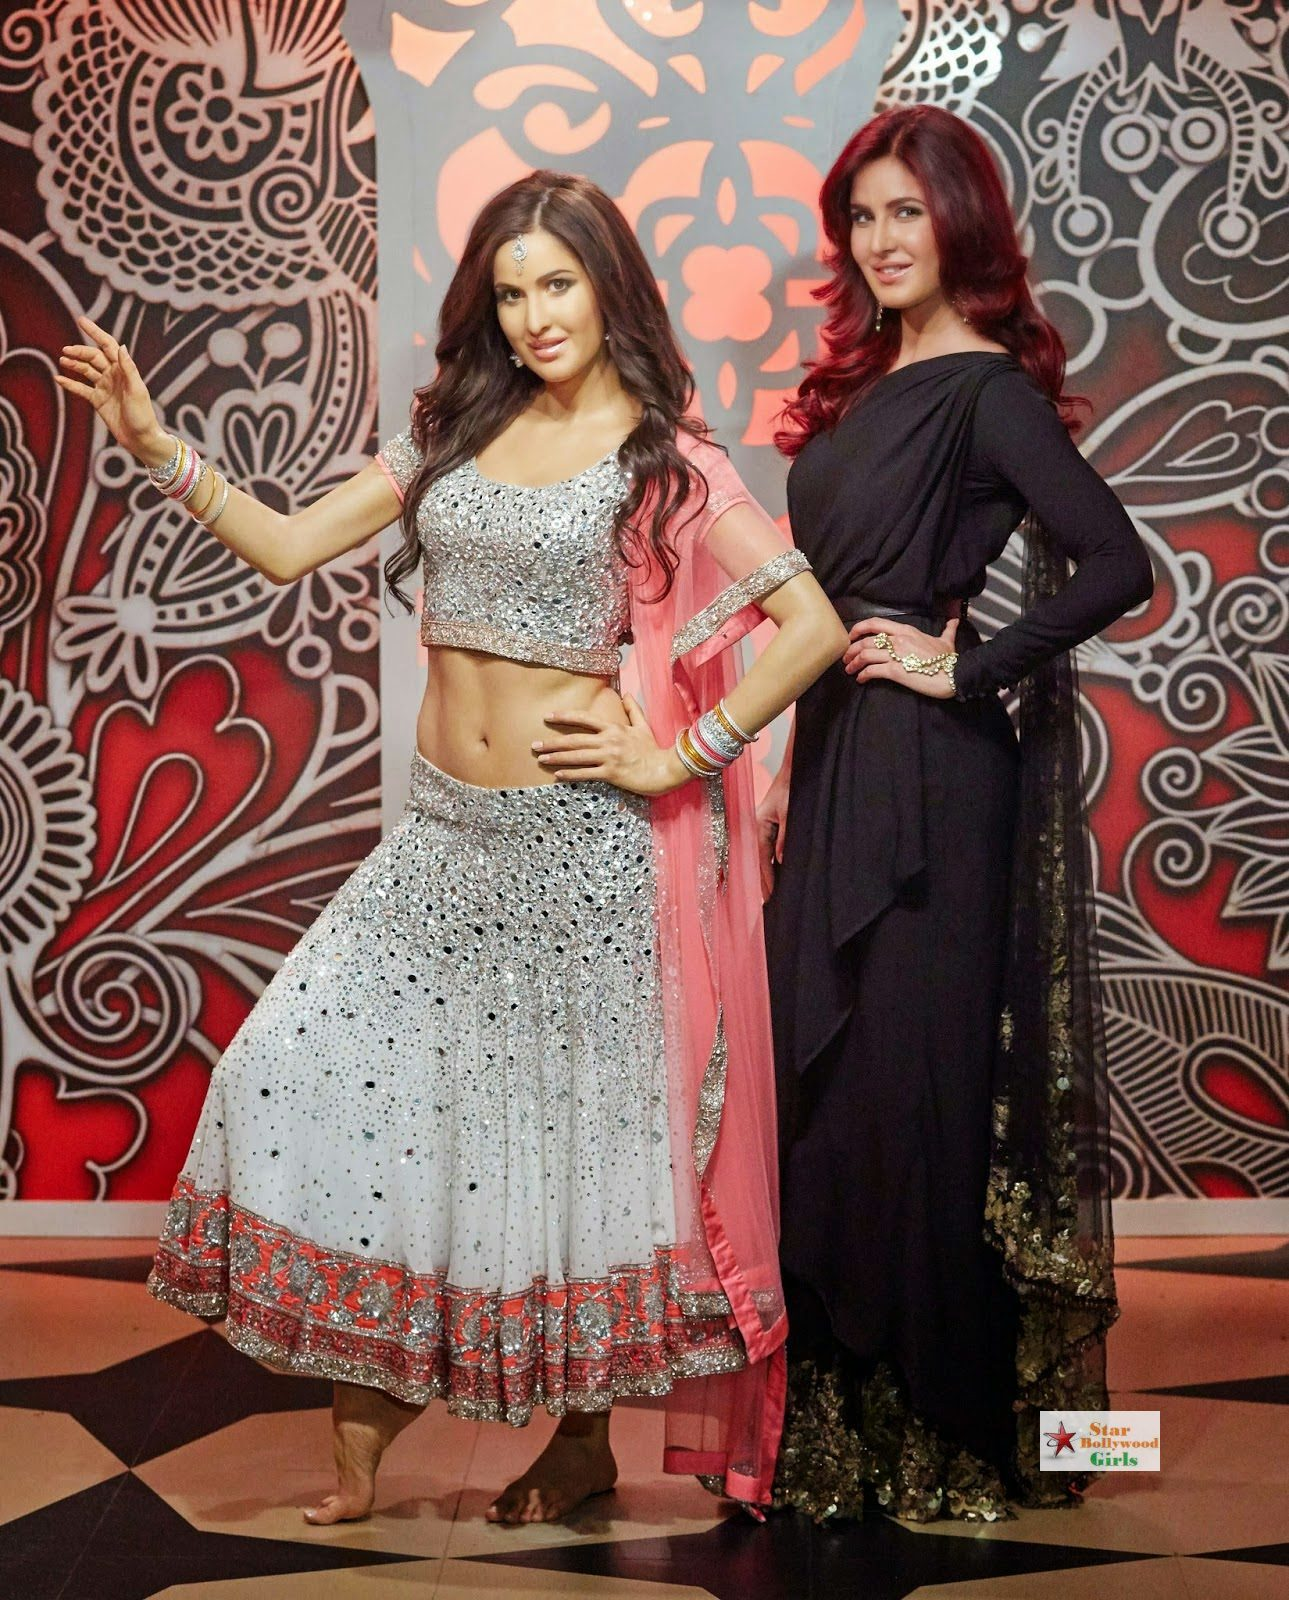 Katrina Kaif s Amazing Wax Statue At Madame Tussauds, London2